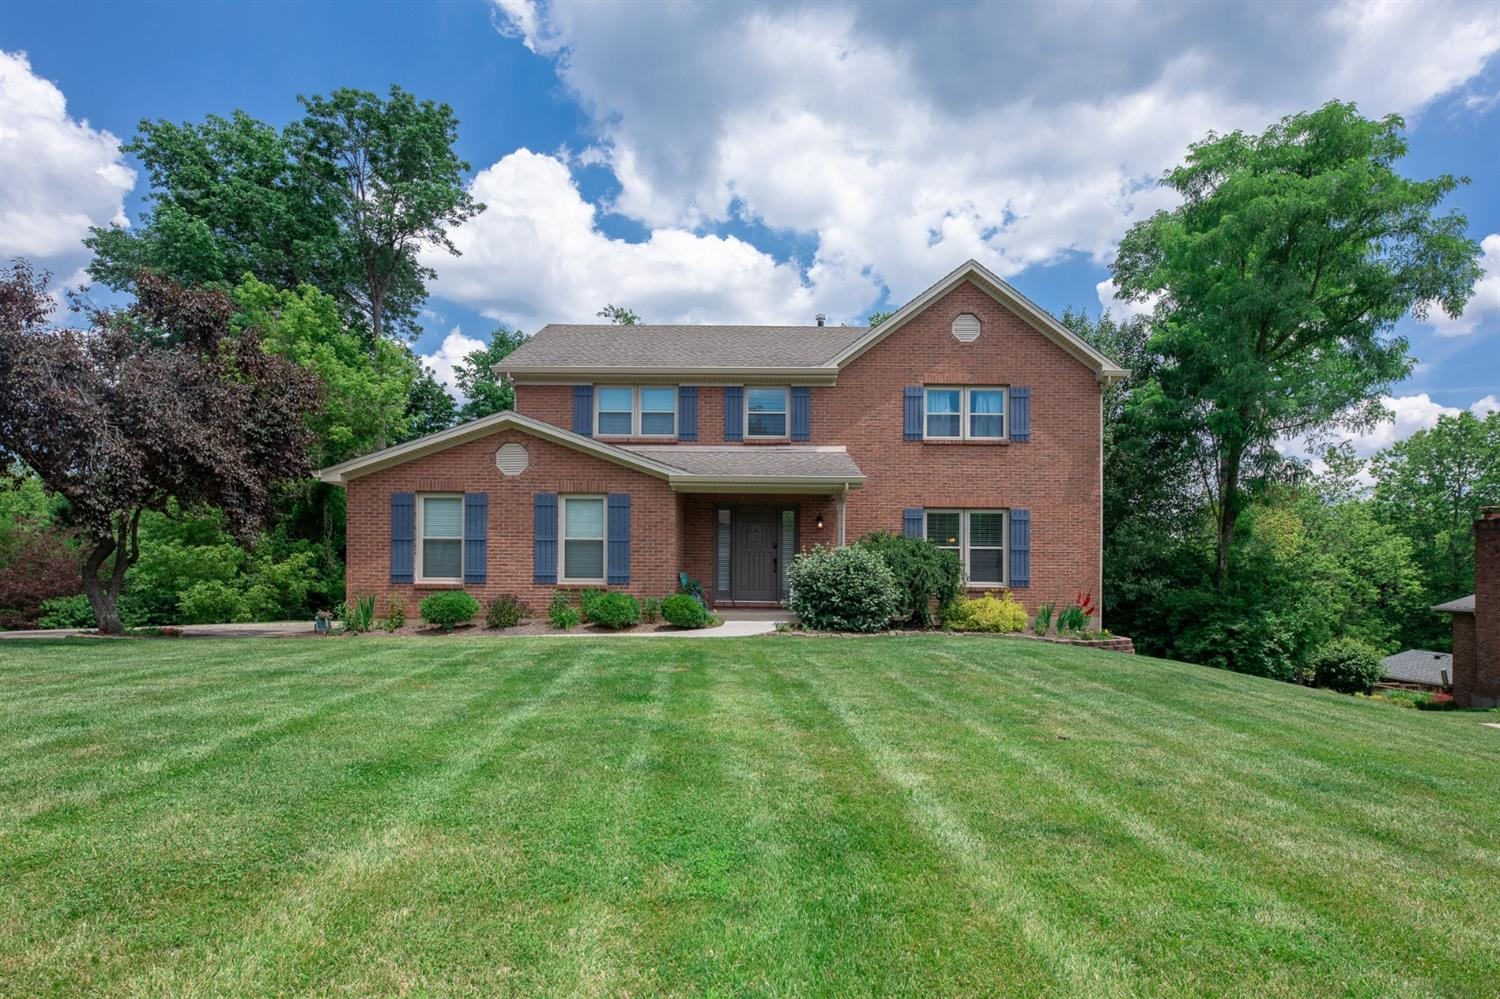 3844 Deerpath Ln Miami Twp. (West), OH